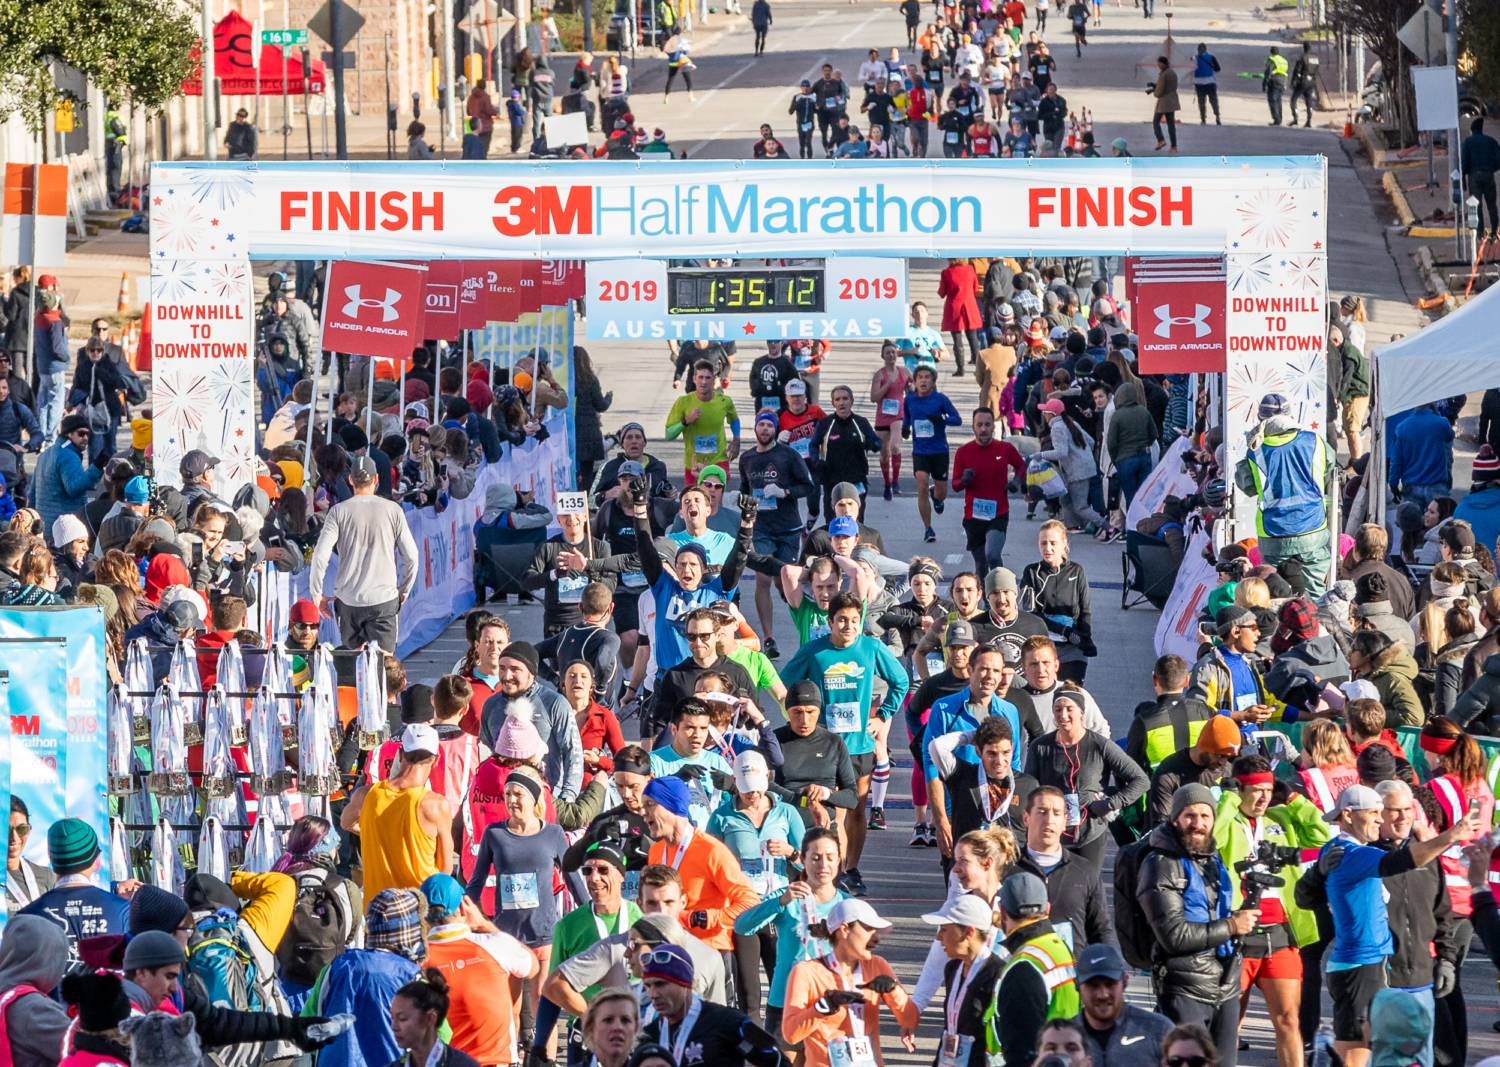 Runners cross the 2019 3M Half Marathon presented by Under Armour finish line.